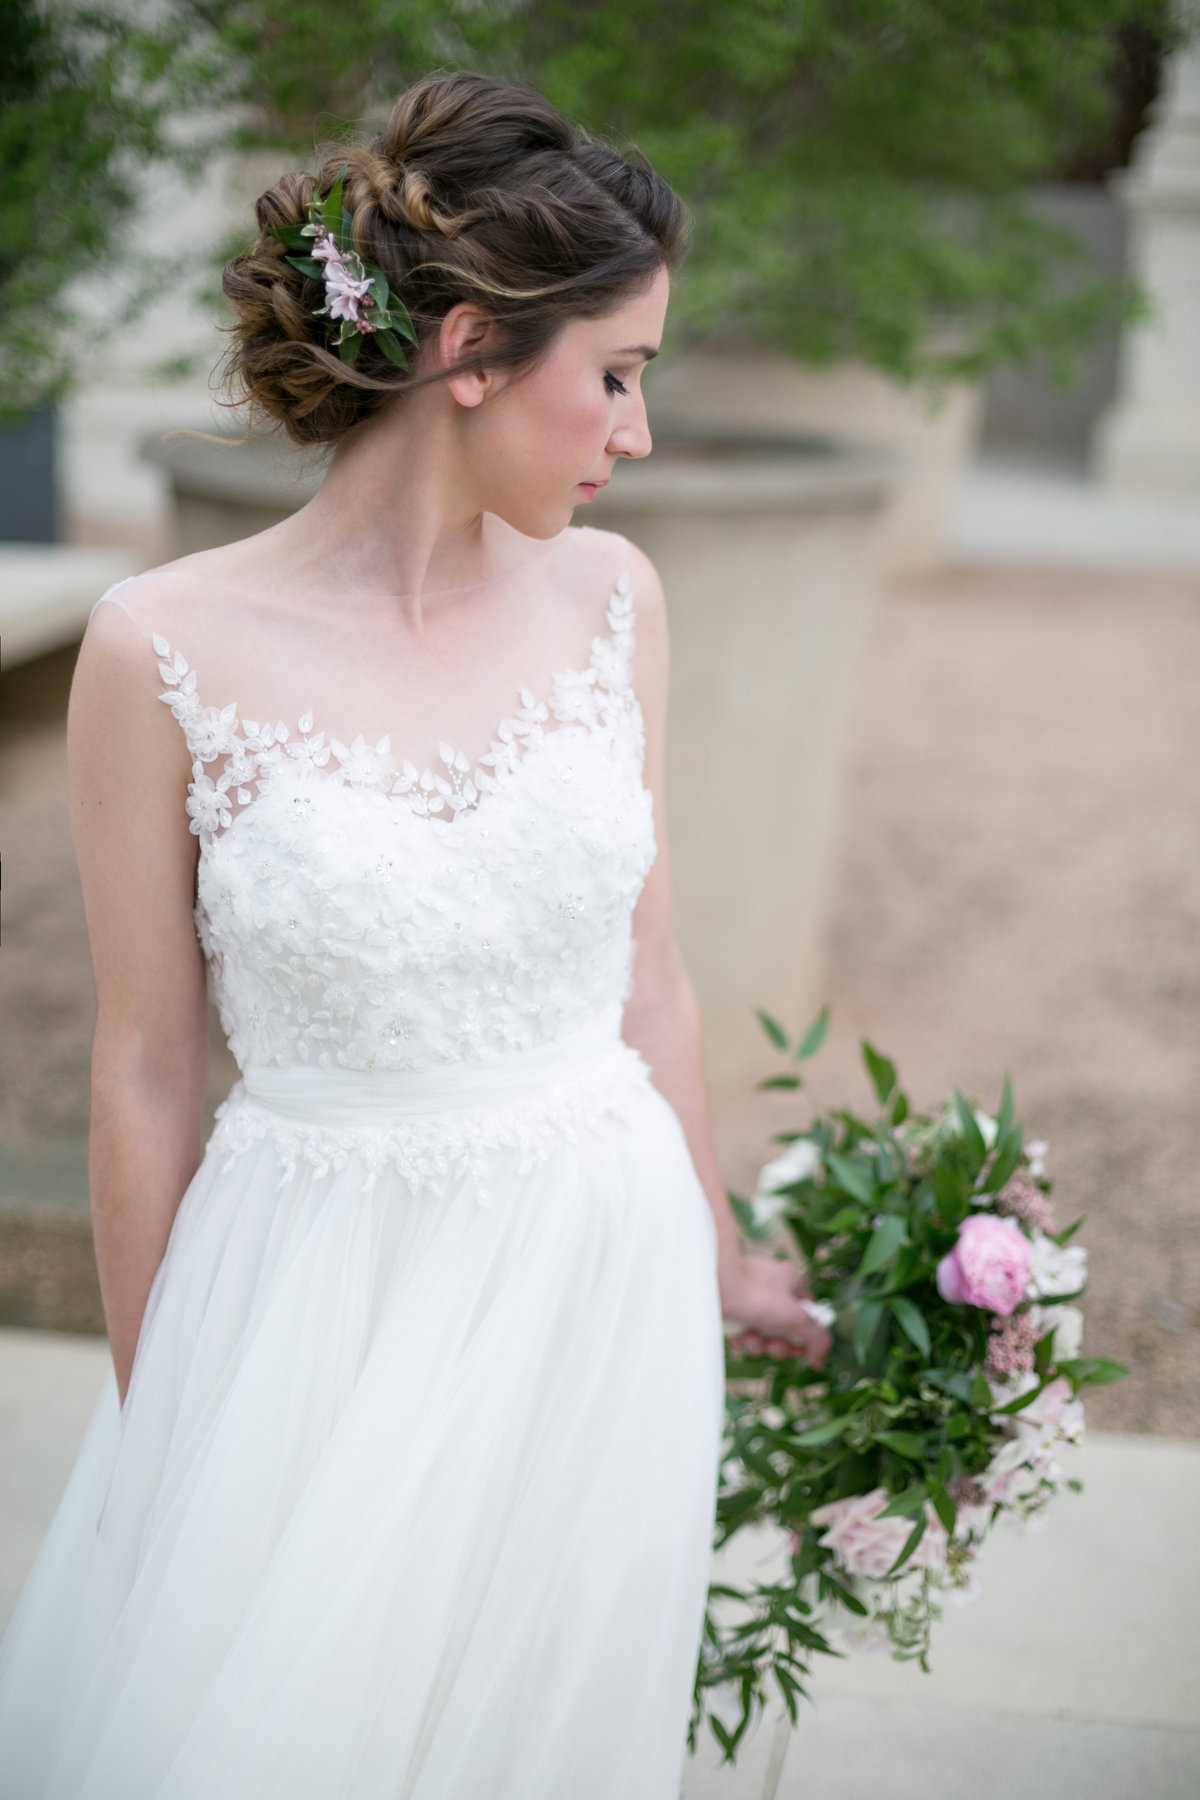 Brooke_Bridal_Session_By_Julia_Sharapova_Dallas_Wedding_Photographer-11 copy